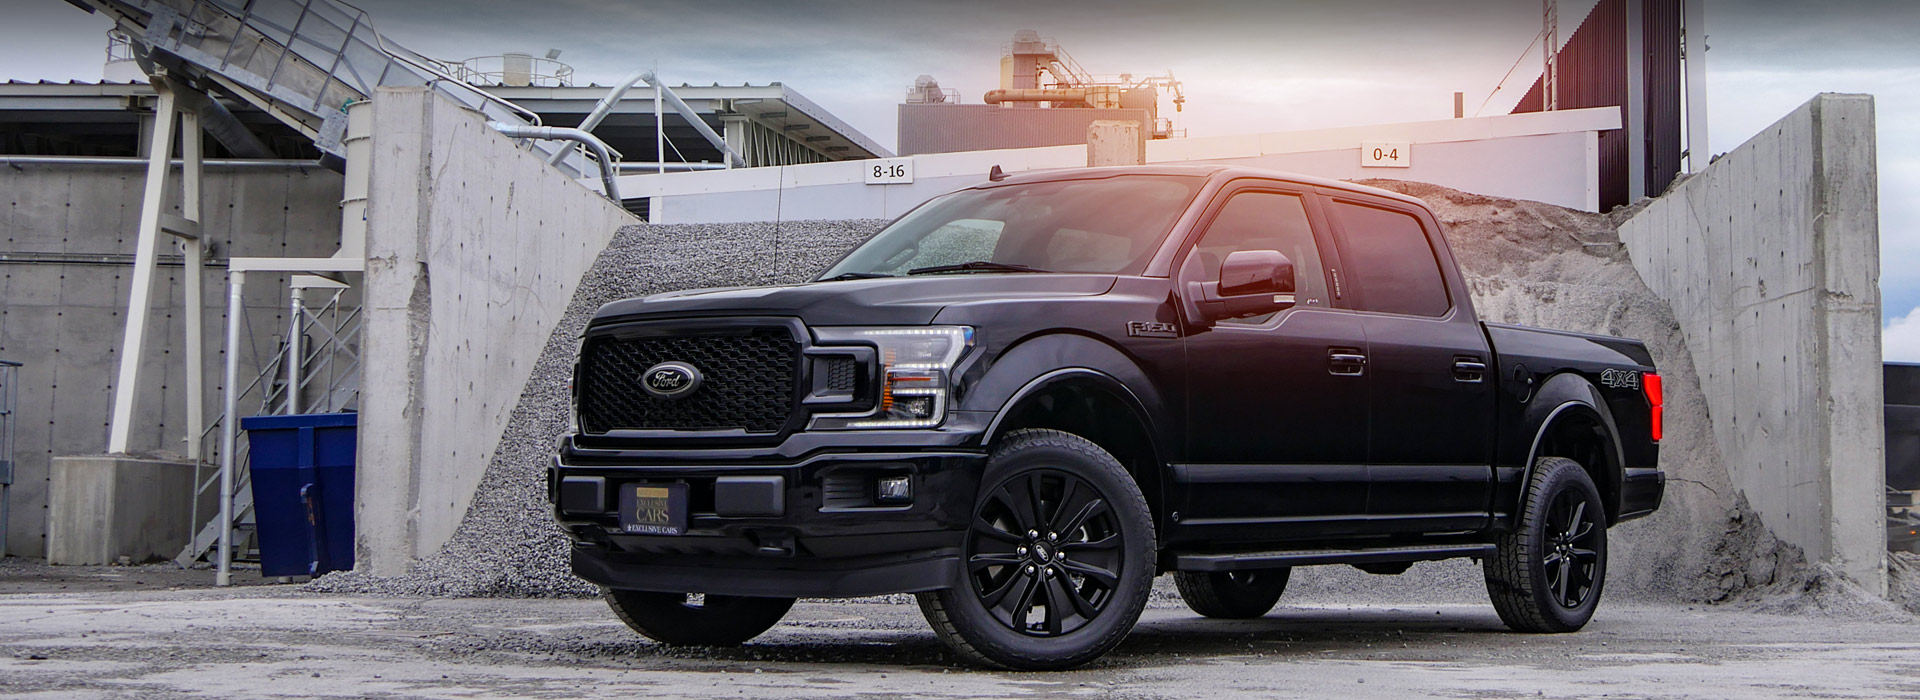 2020 Ford F-150 Black Appearance